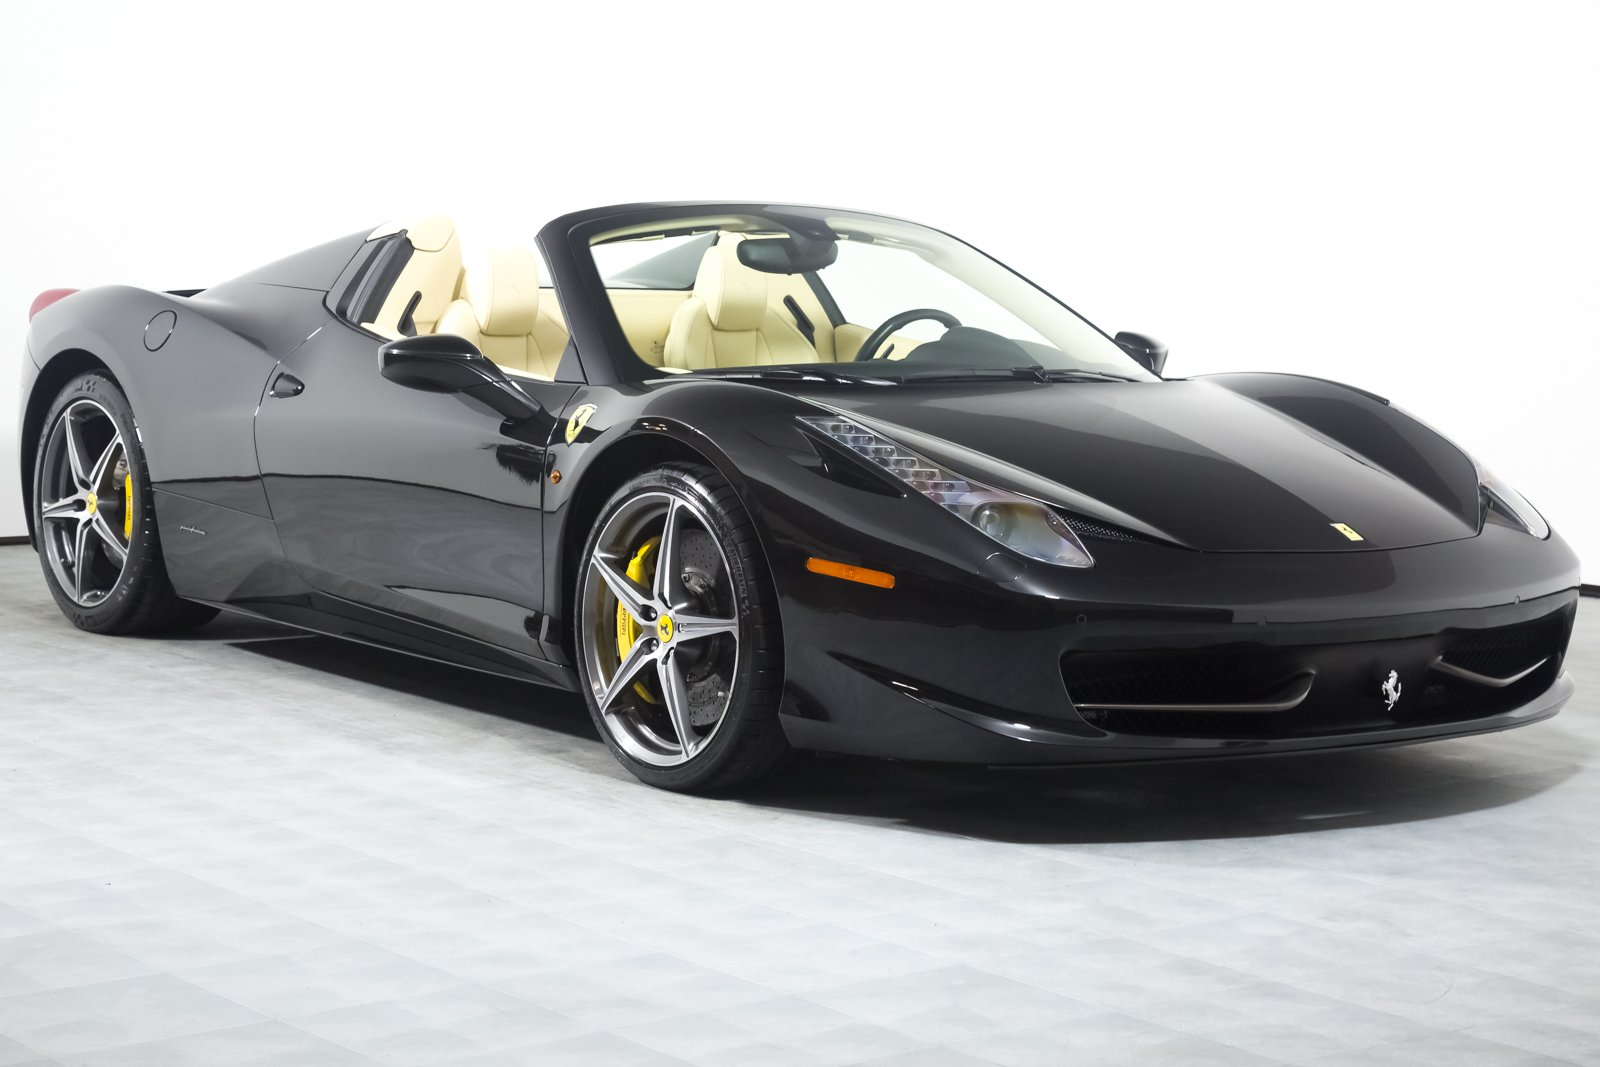 certified pre-owned 2012 ferrari 458 spider convertible in rancho